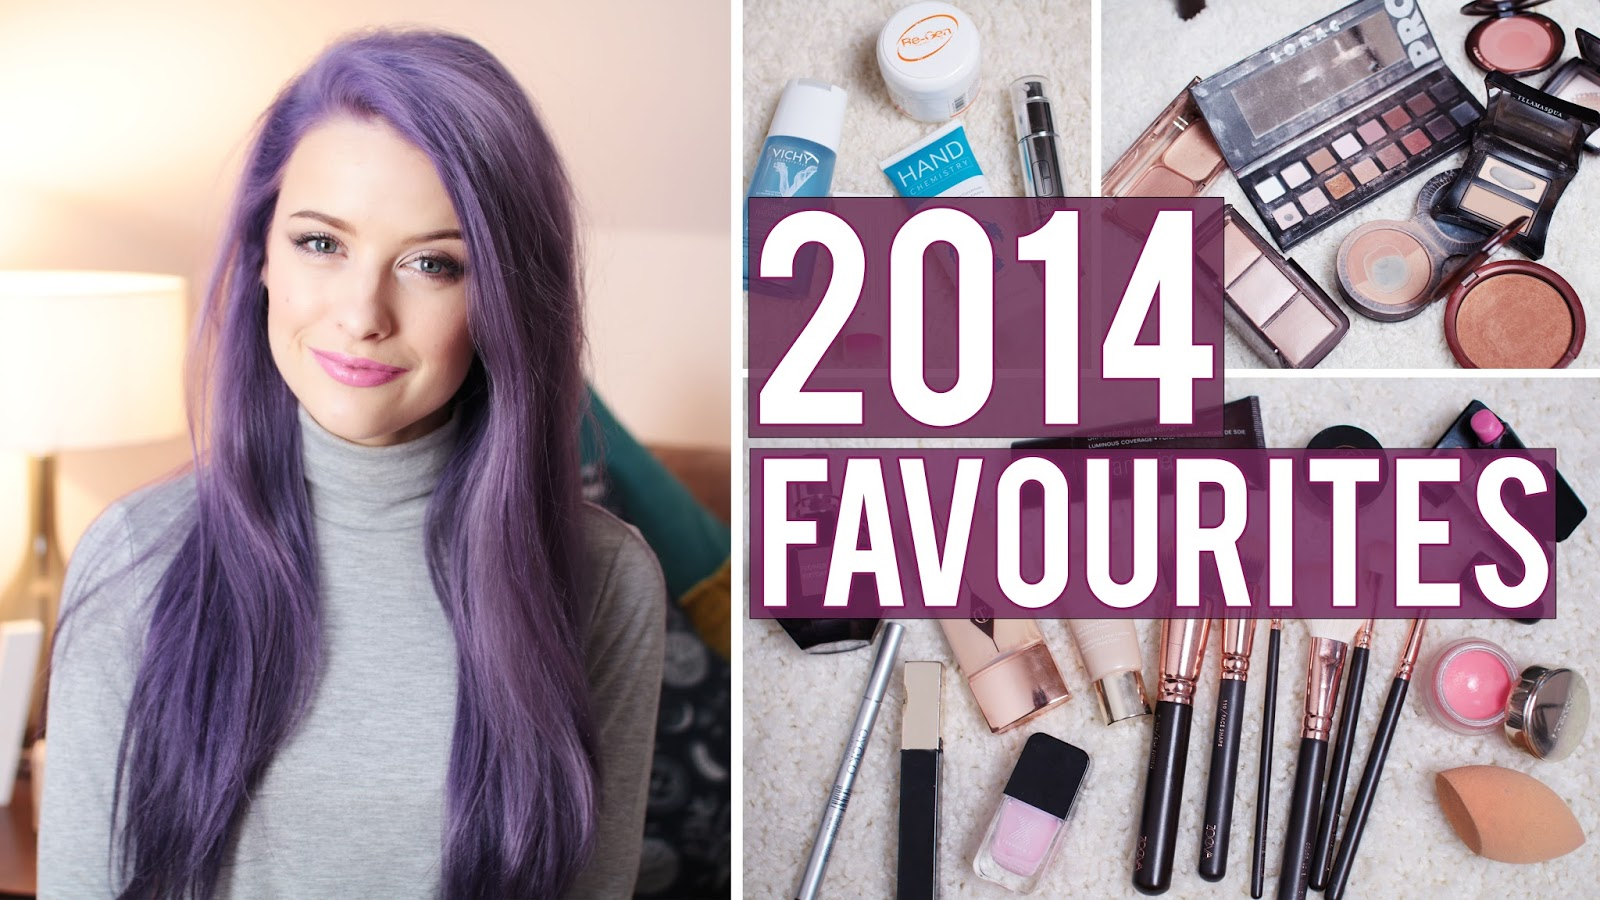 The Best Products of 2014